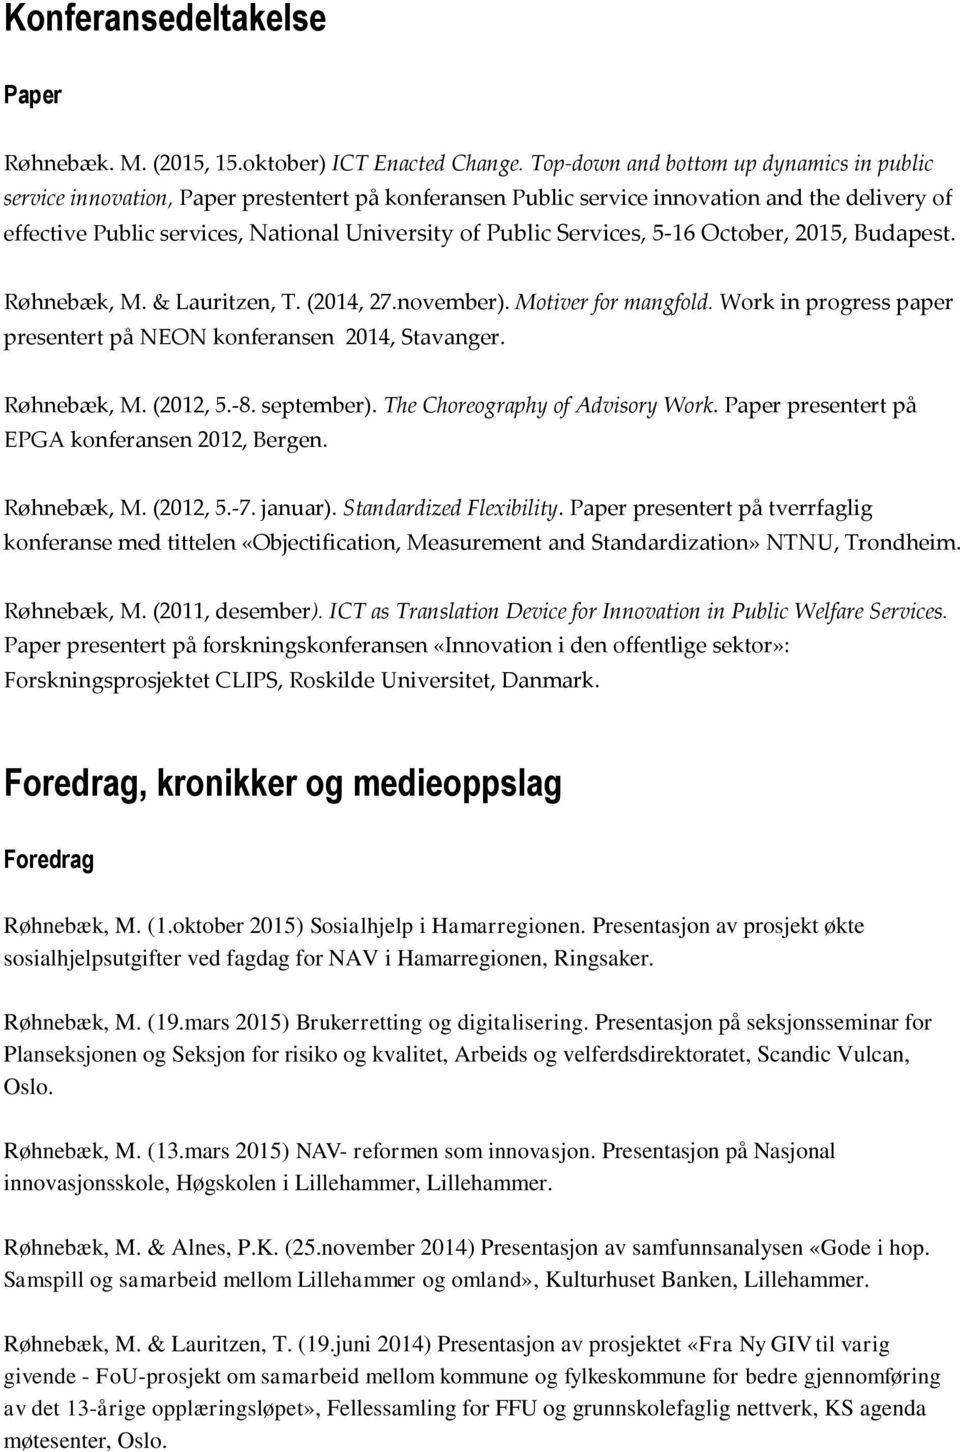 Services, 5-16 October, 2015, Budapest. Røhnebæk, M. & Lauritzen, T. (2014, 27.november). Motiver for mangfold. Work in progress paper presentert på NEON konferansen 2014, Stavanger. Røhnebæk, M. (2012, 5.